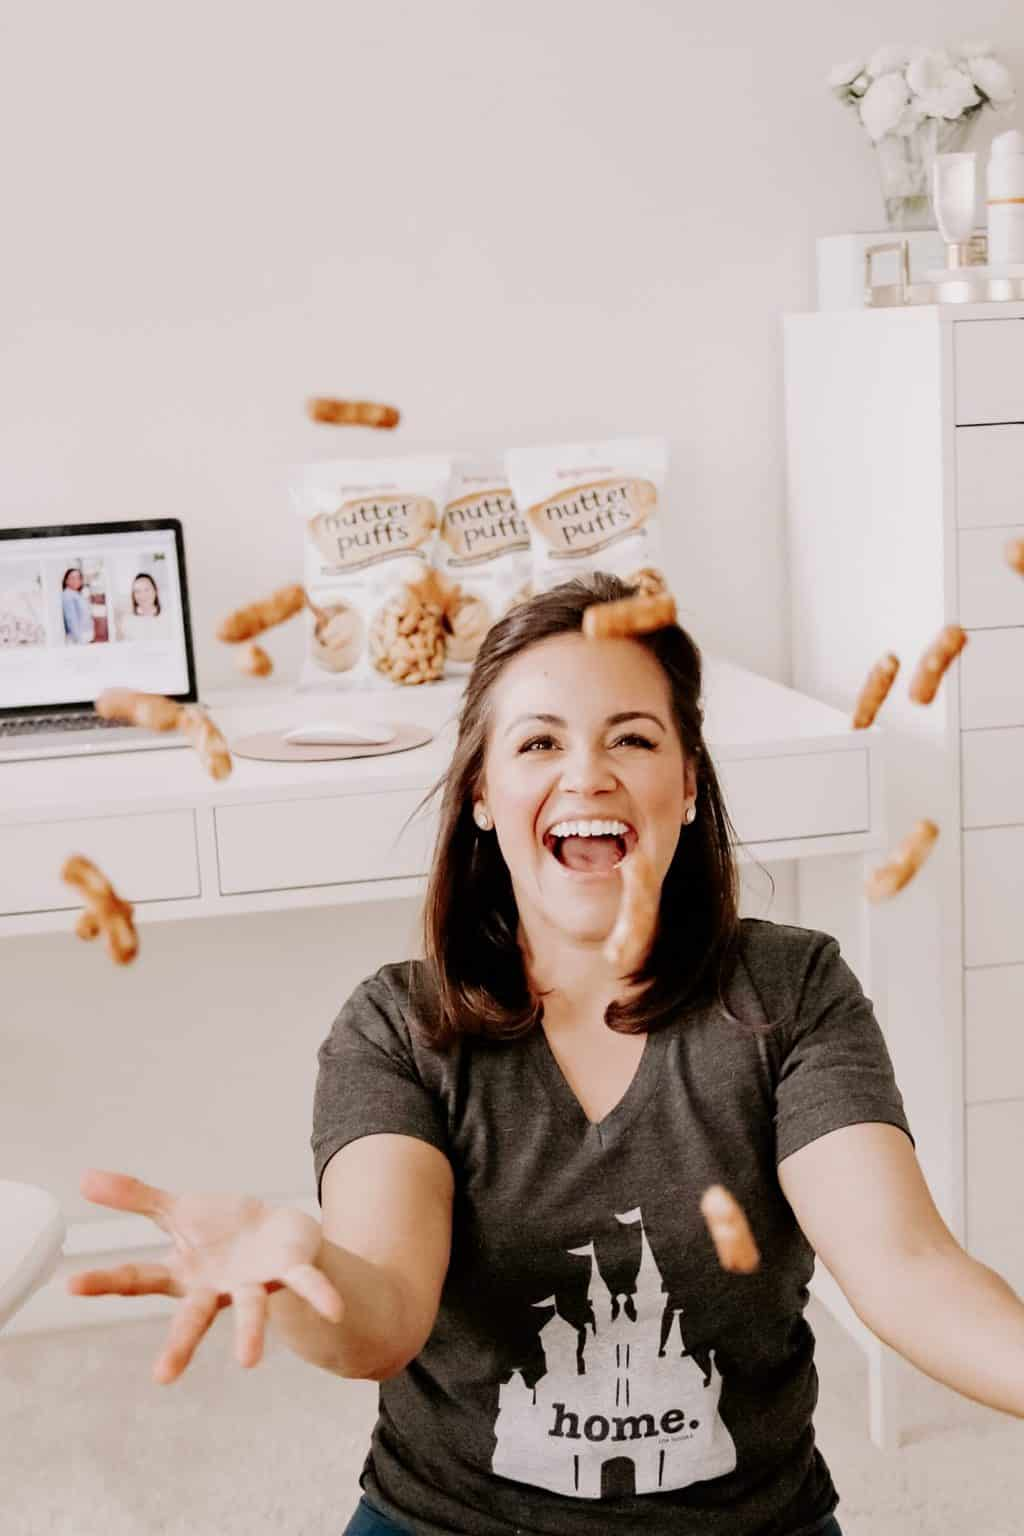 nutter puffs falling down on blogger